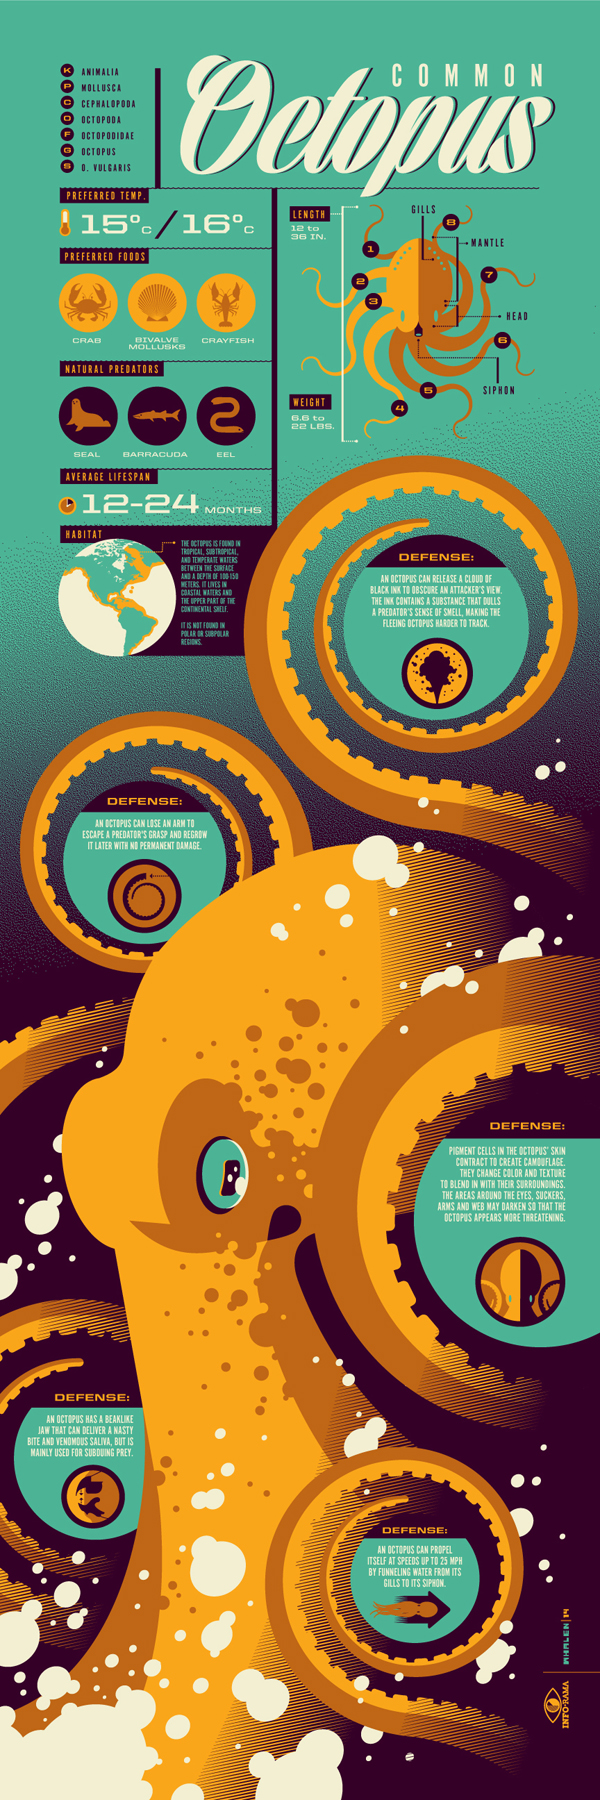 I think this is a good infographic example because it separates the information nicely. Every piece of information has a place to highlight its importance. I like how it uses the body of the octopus to separate the different defenses octopi have.